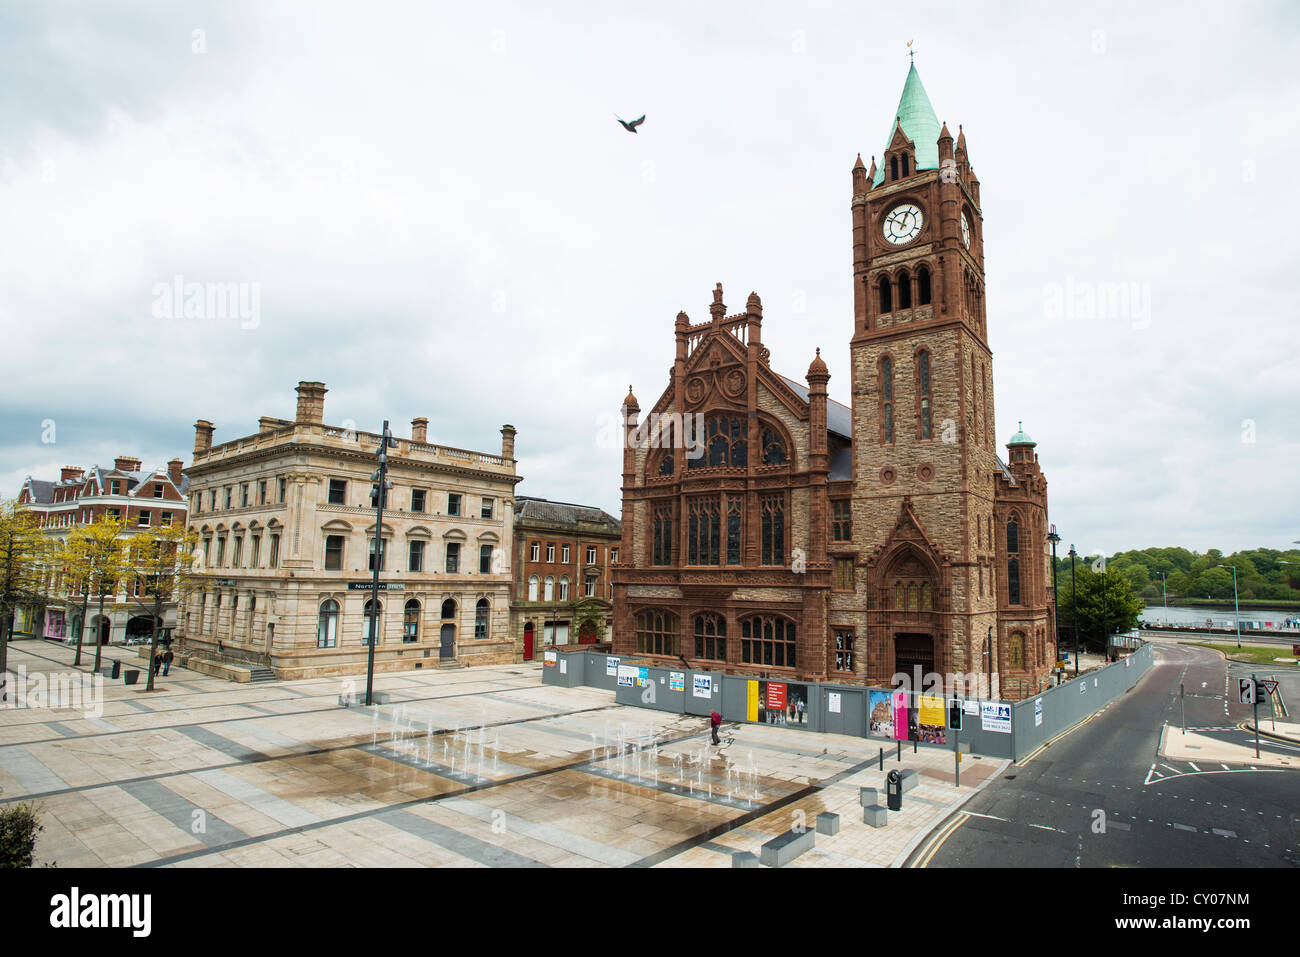 Derry / Londonderry United Kingdom  city images : Guildhall, Derry, Londonderry, Northern Ireland, United Kingdom Stock ...